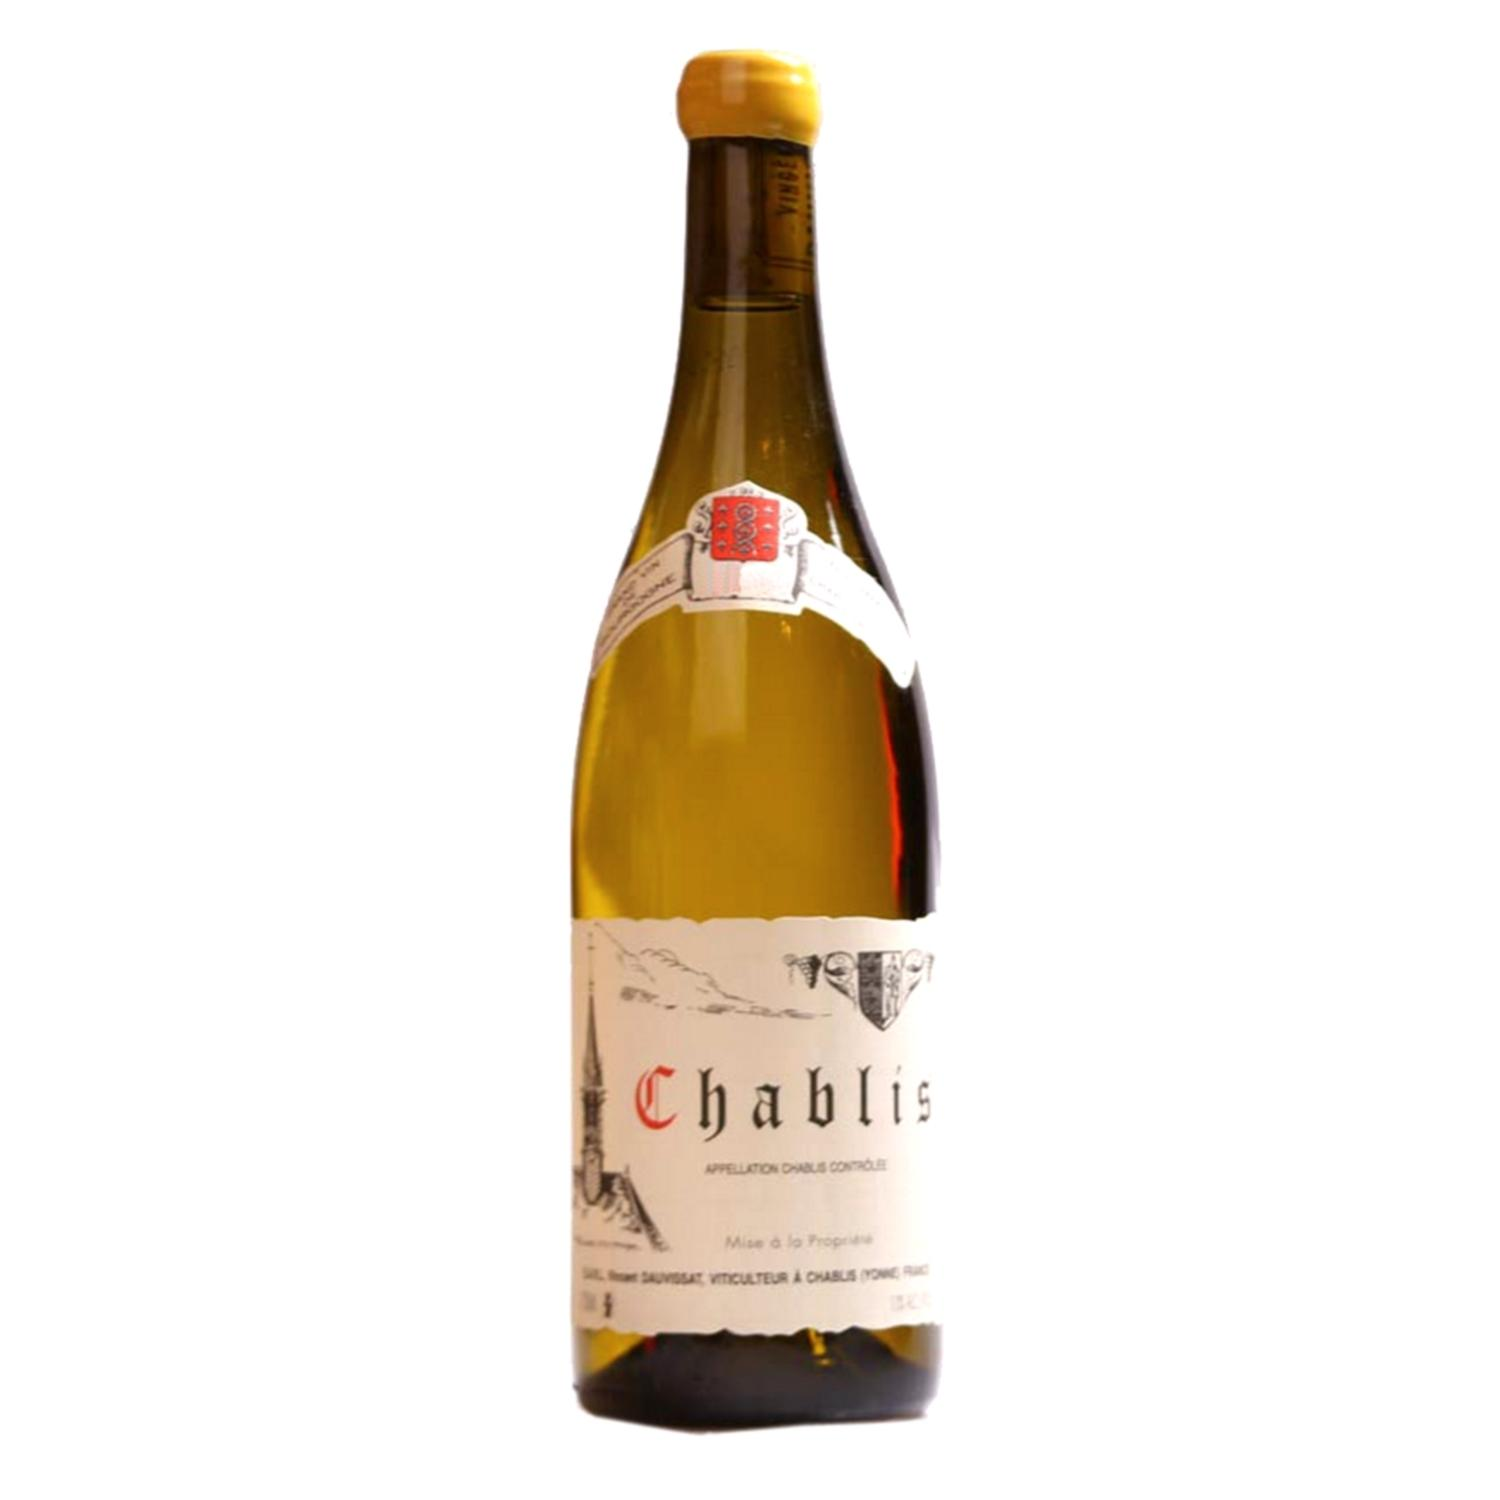 domaine r v dauvissat chablis 2013 vin blanc. Black Bedroom Furniture Sets. Home Design Ideas